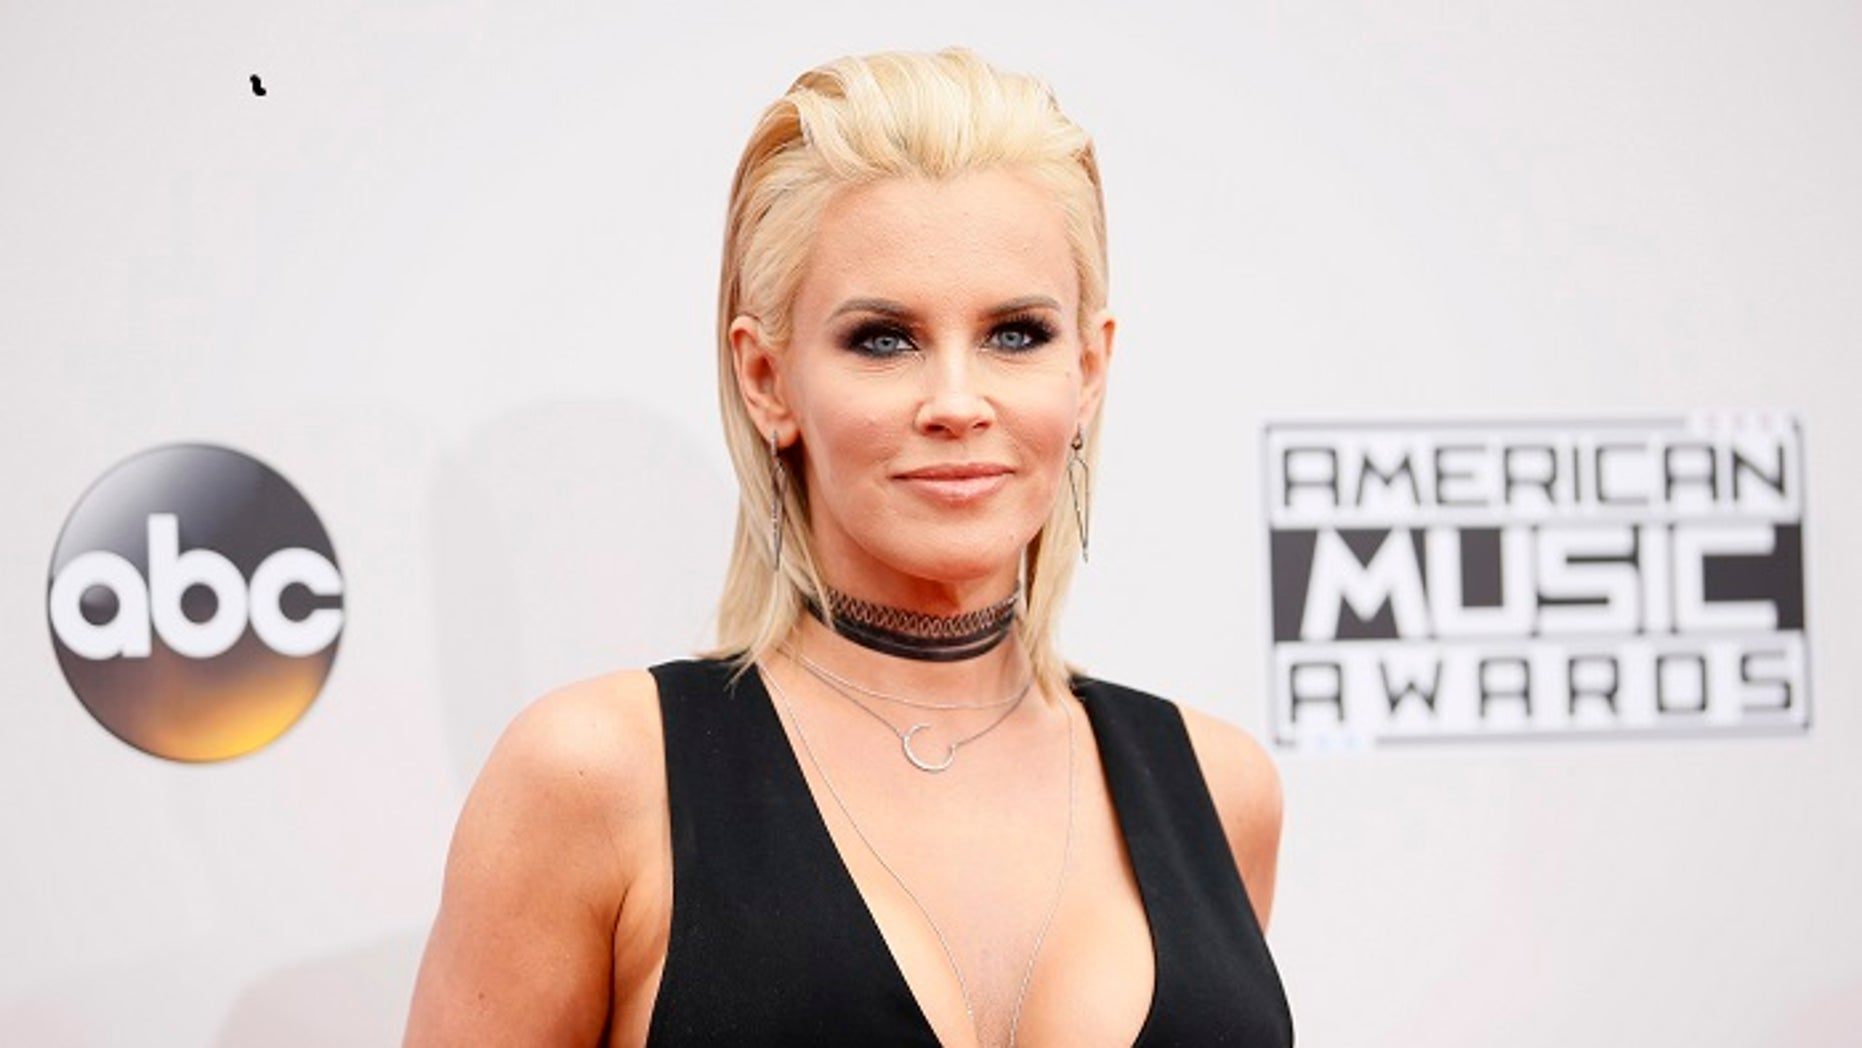 Photo Jenny McCarthy nudes (43 foto and video), Topless, Fappening, Feet, underwear 2015